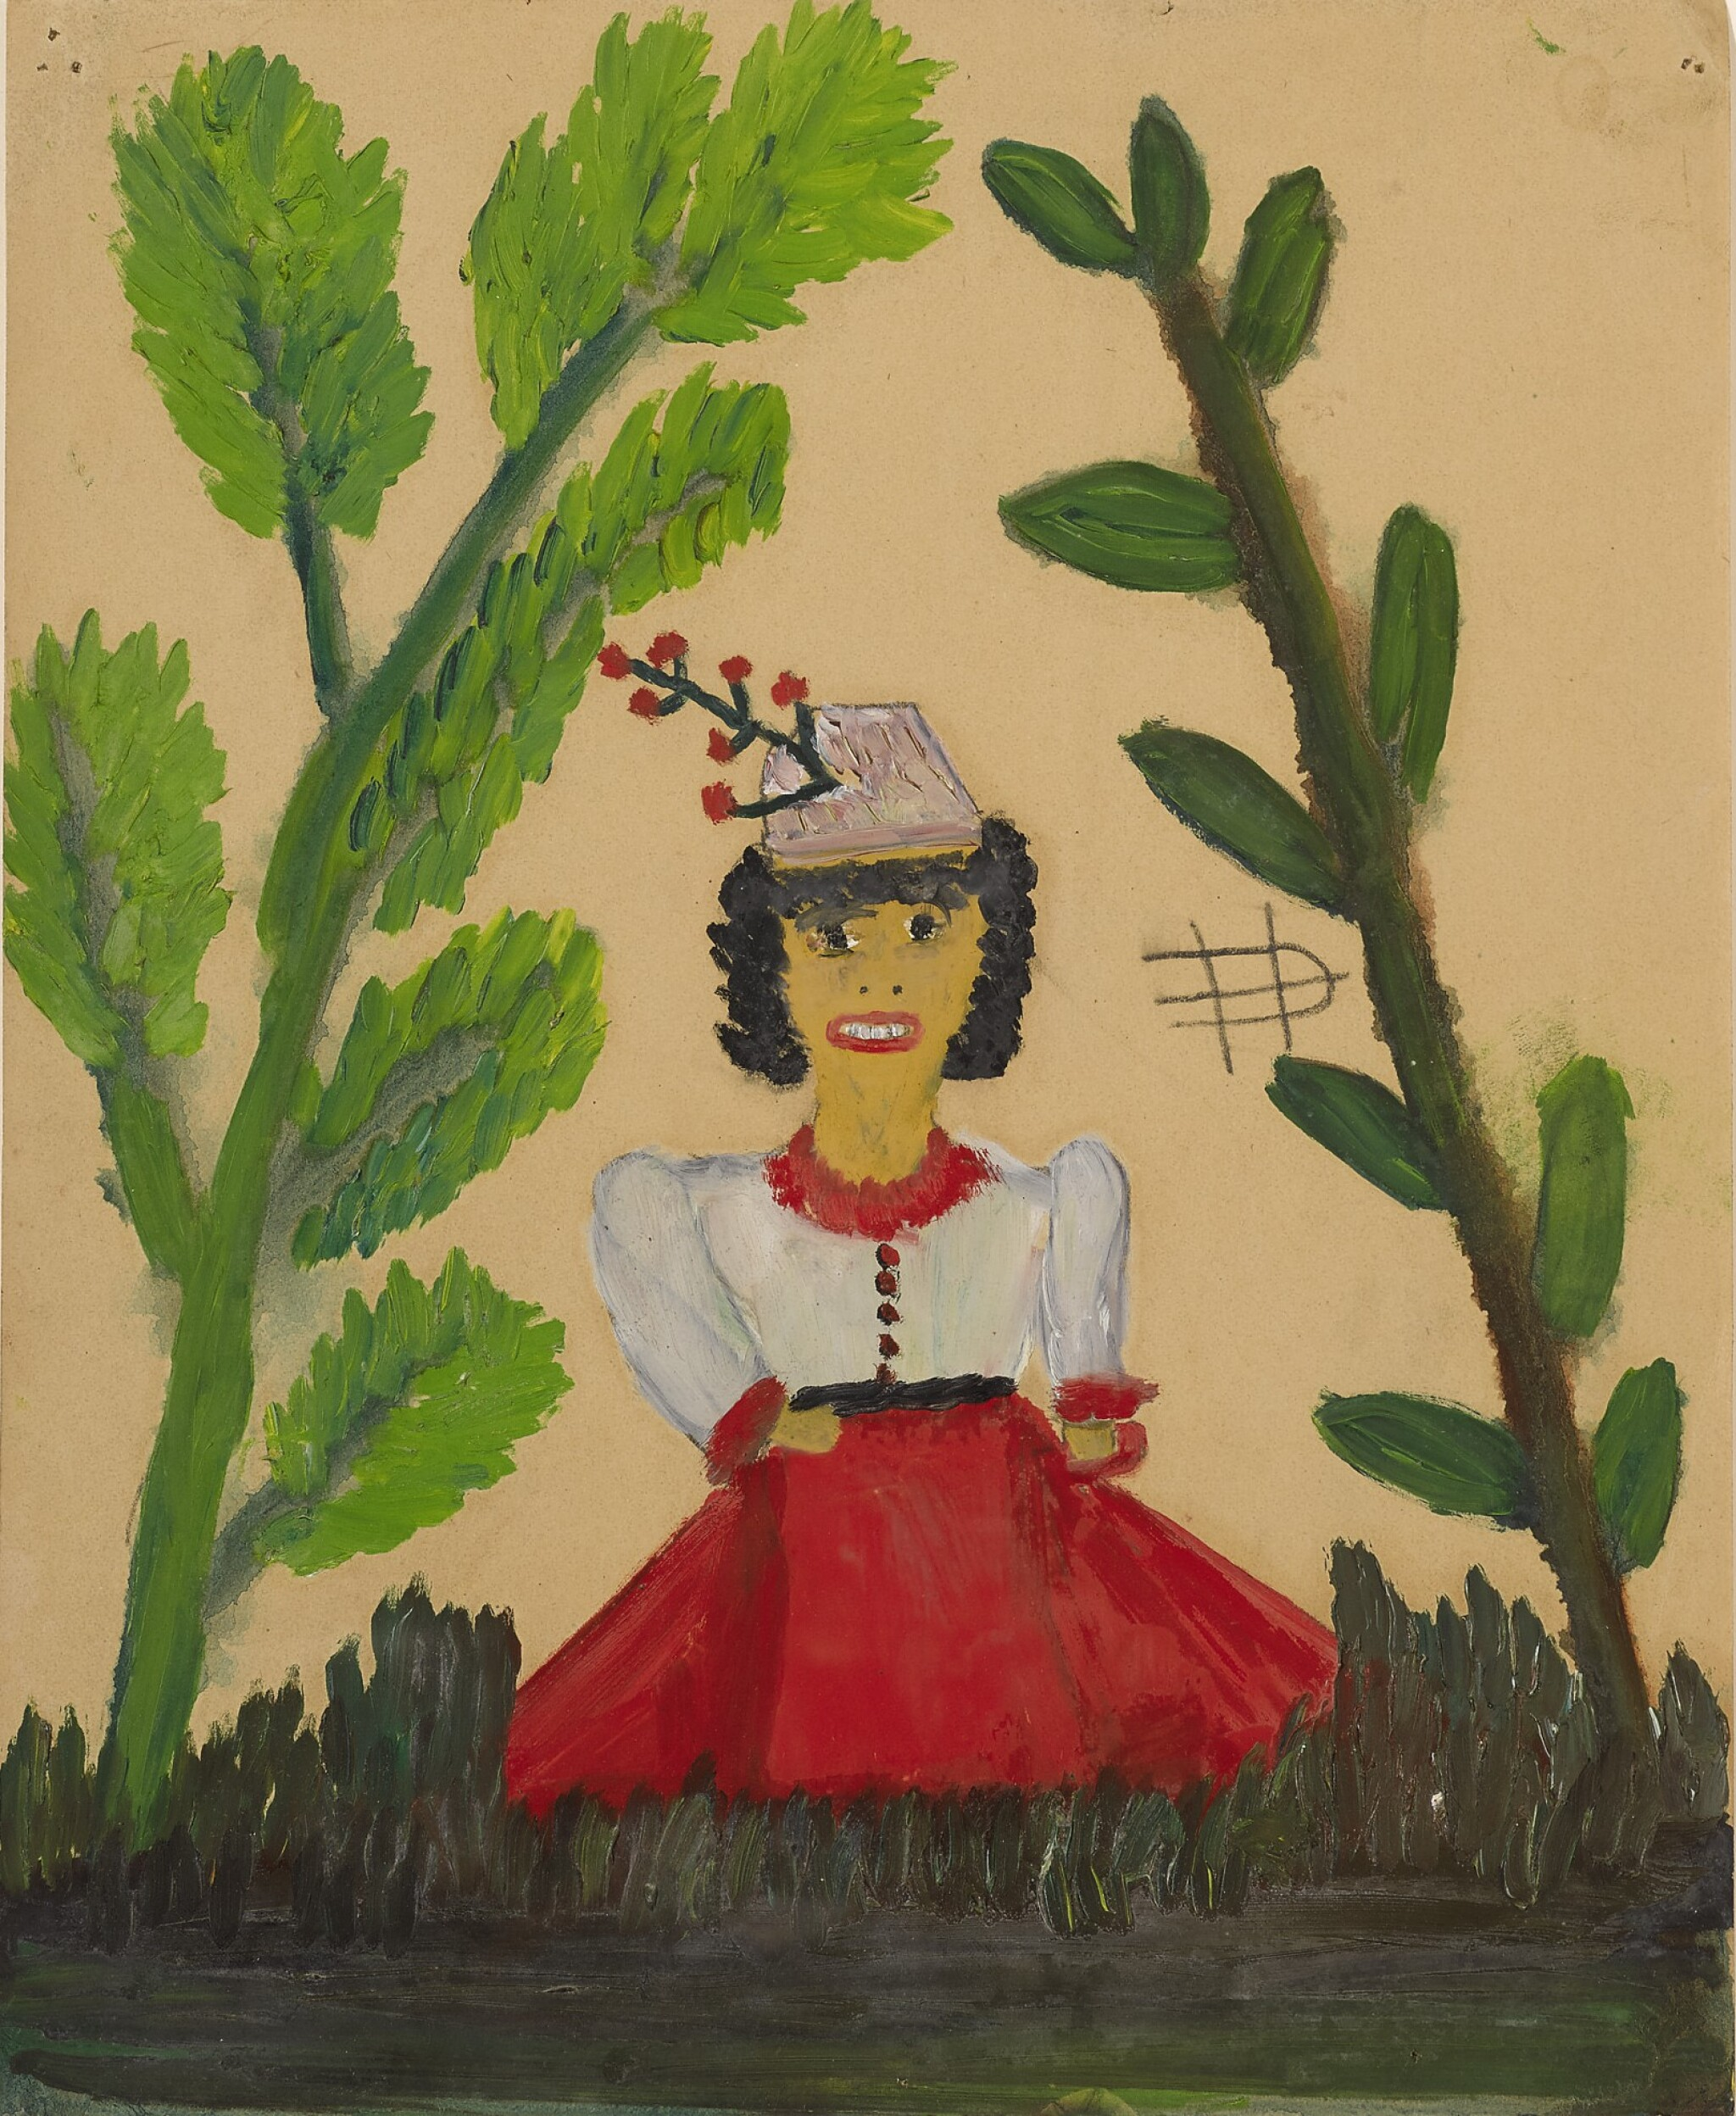 View 1 of Lot 1505. CLEMENTINE REUBEN HUNTER | PORTRAIT OF A WOMAN IN A RED AND WHITE DRESS STANDING IN A PARK.